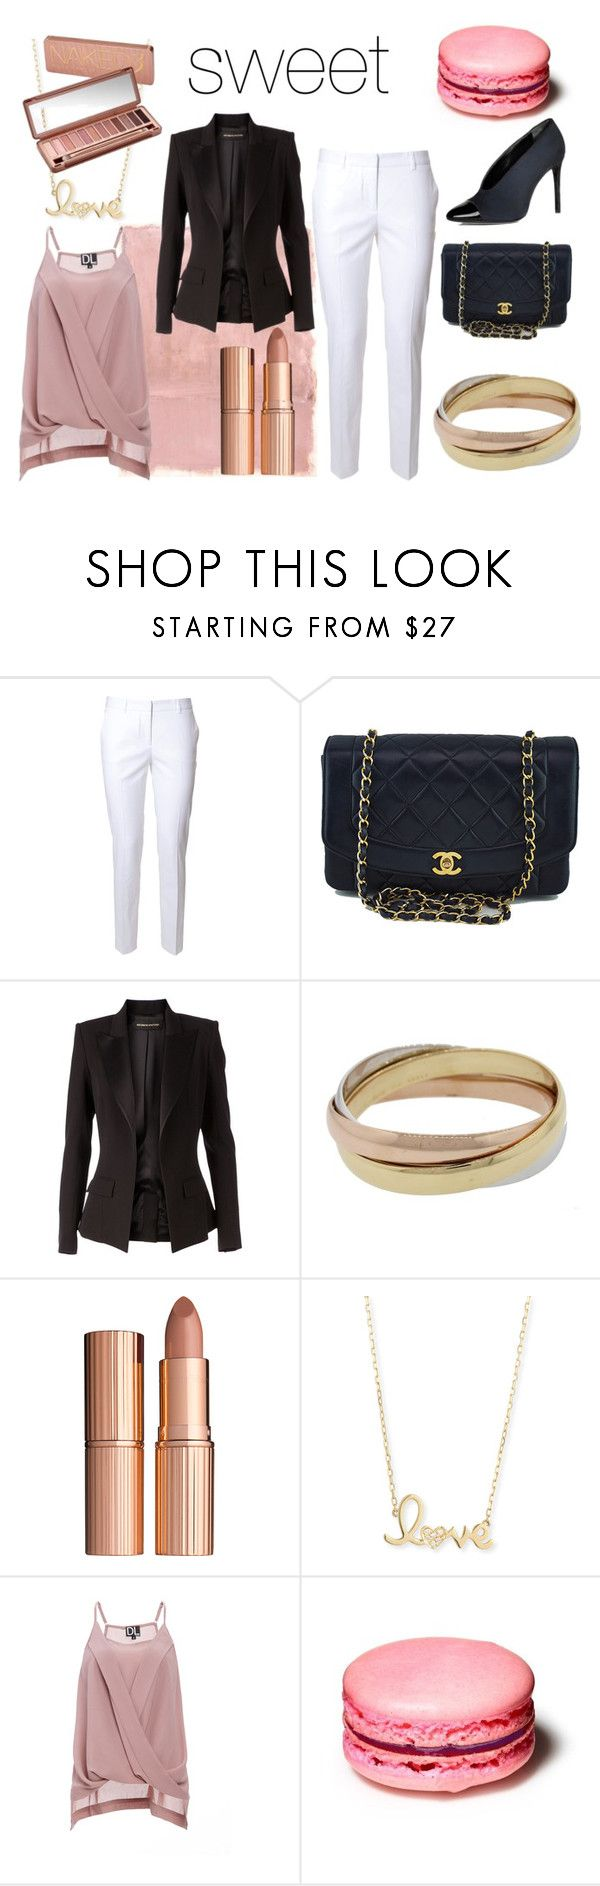 """Untitled #16"" by slavulienka on Polyvore featuring Rothko, Alberto Biani, Chanel, Alexandre Vauthier, Cartier, Charlotte Tilbury, Sydney Evan, DailyLook, Lanvin and Urban Decay"